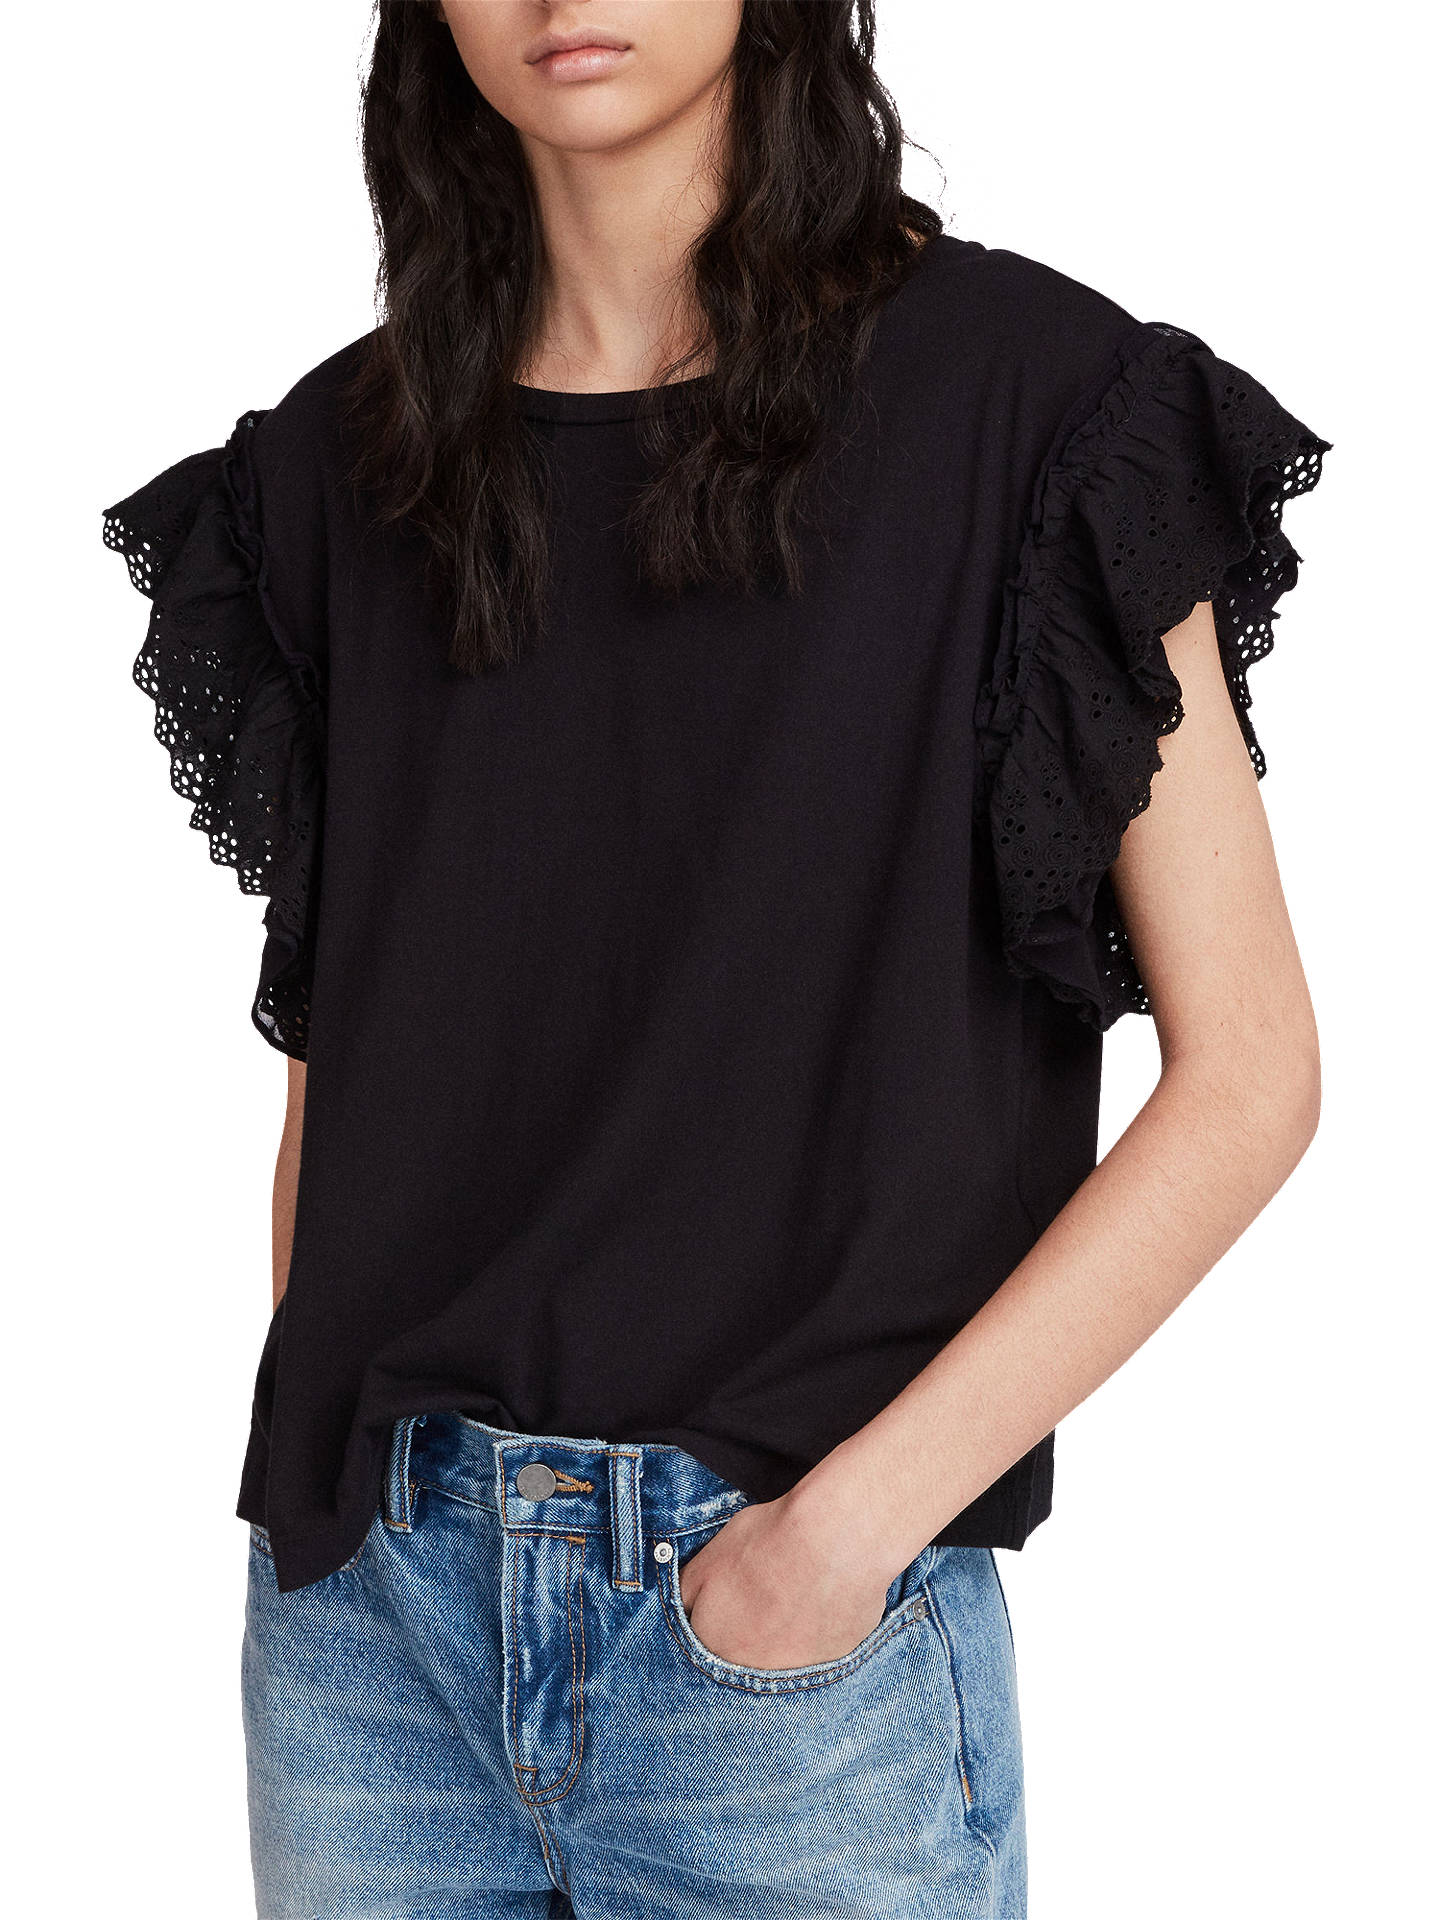 BuyAllSaints Senna Adelaide Ruffle Sleeve Top, Black, XS Online at johnlewis.com